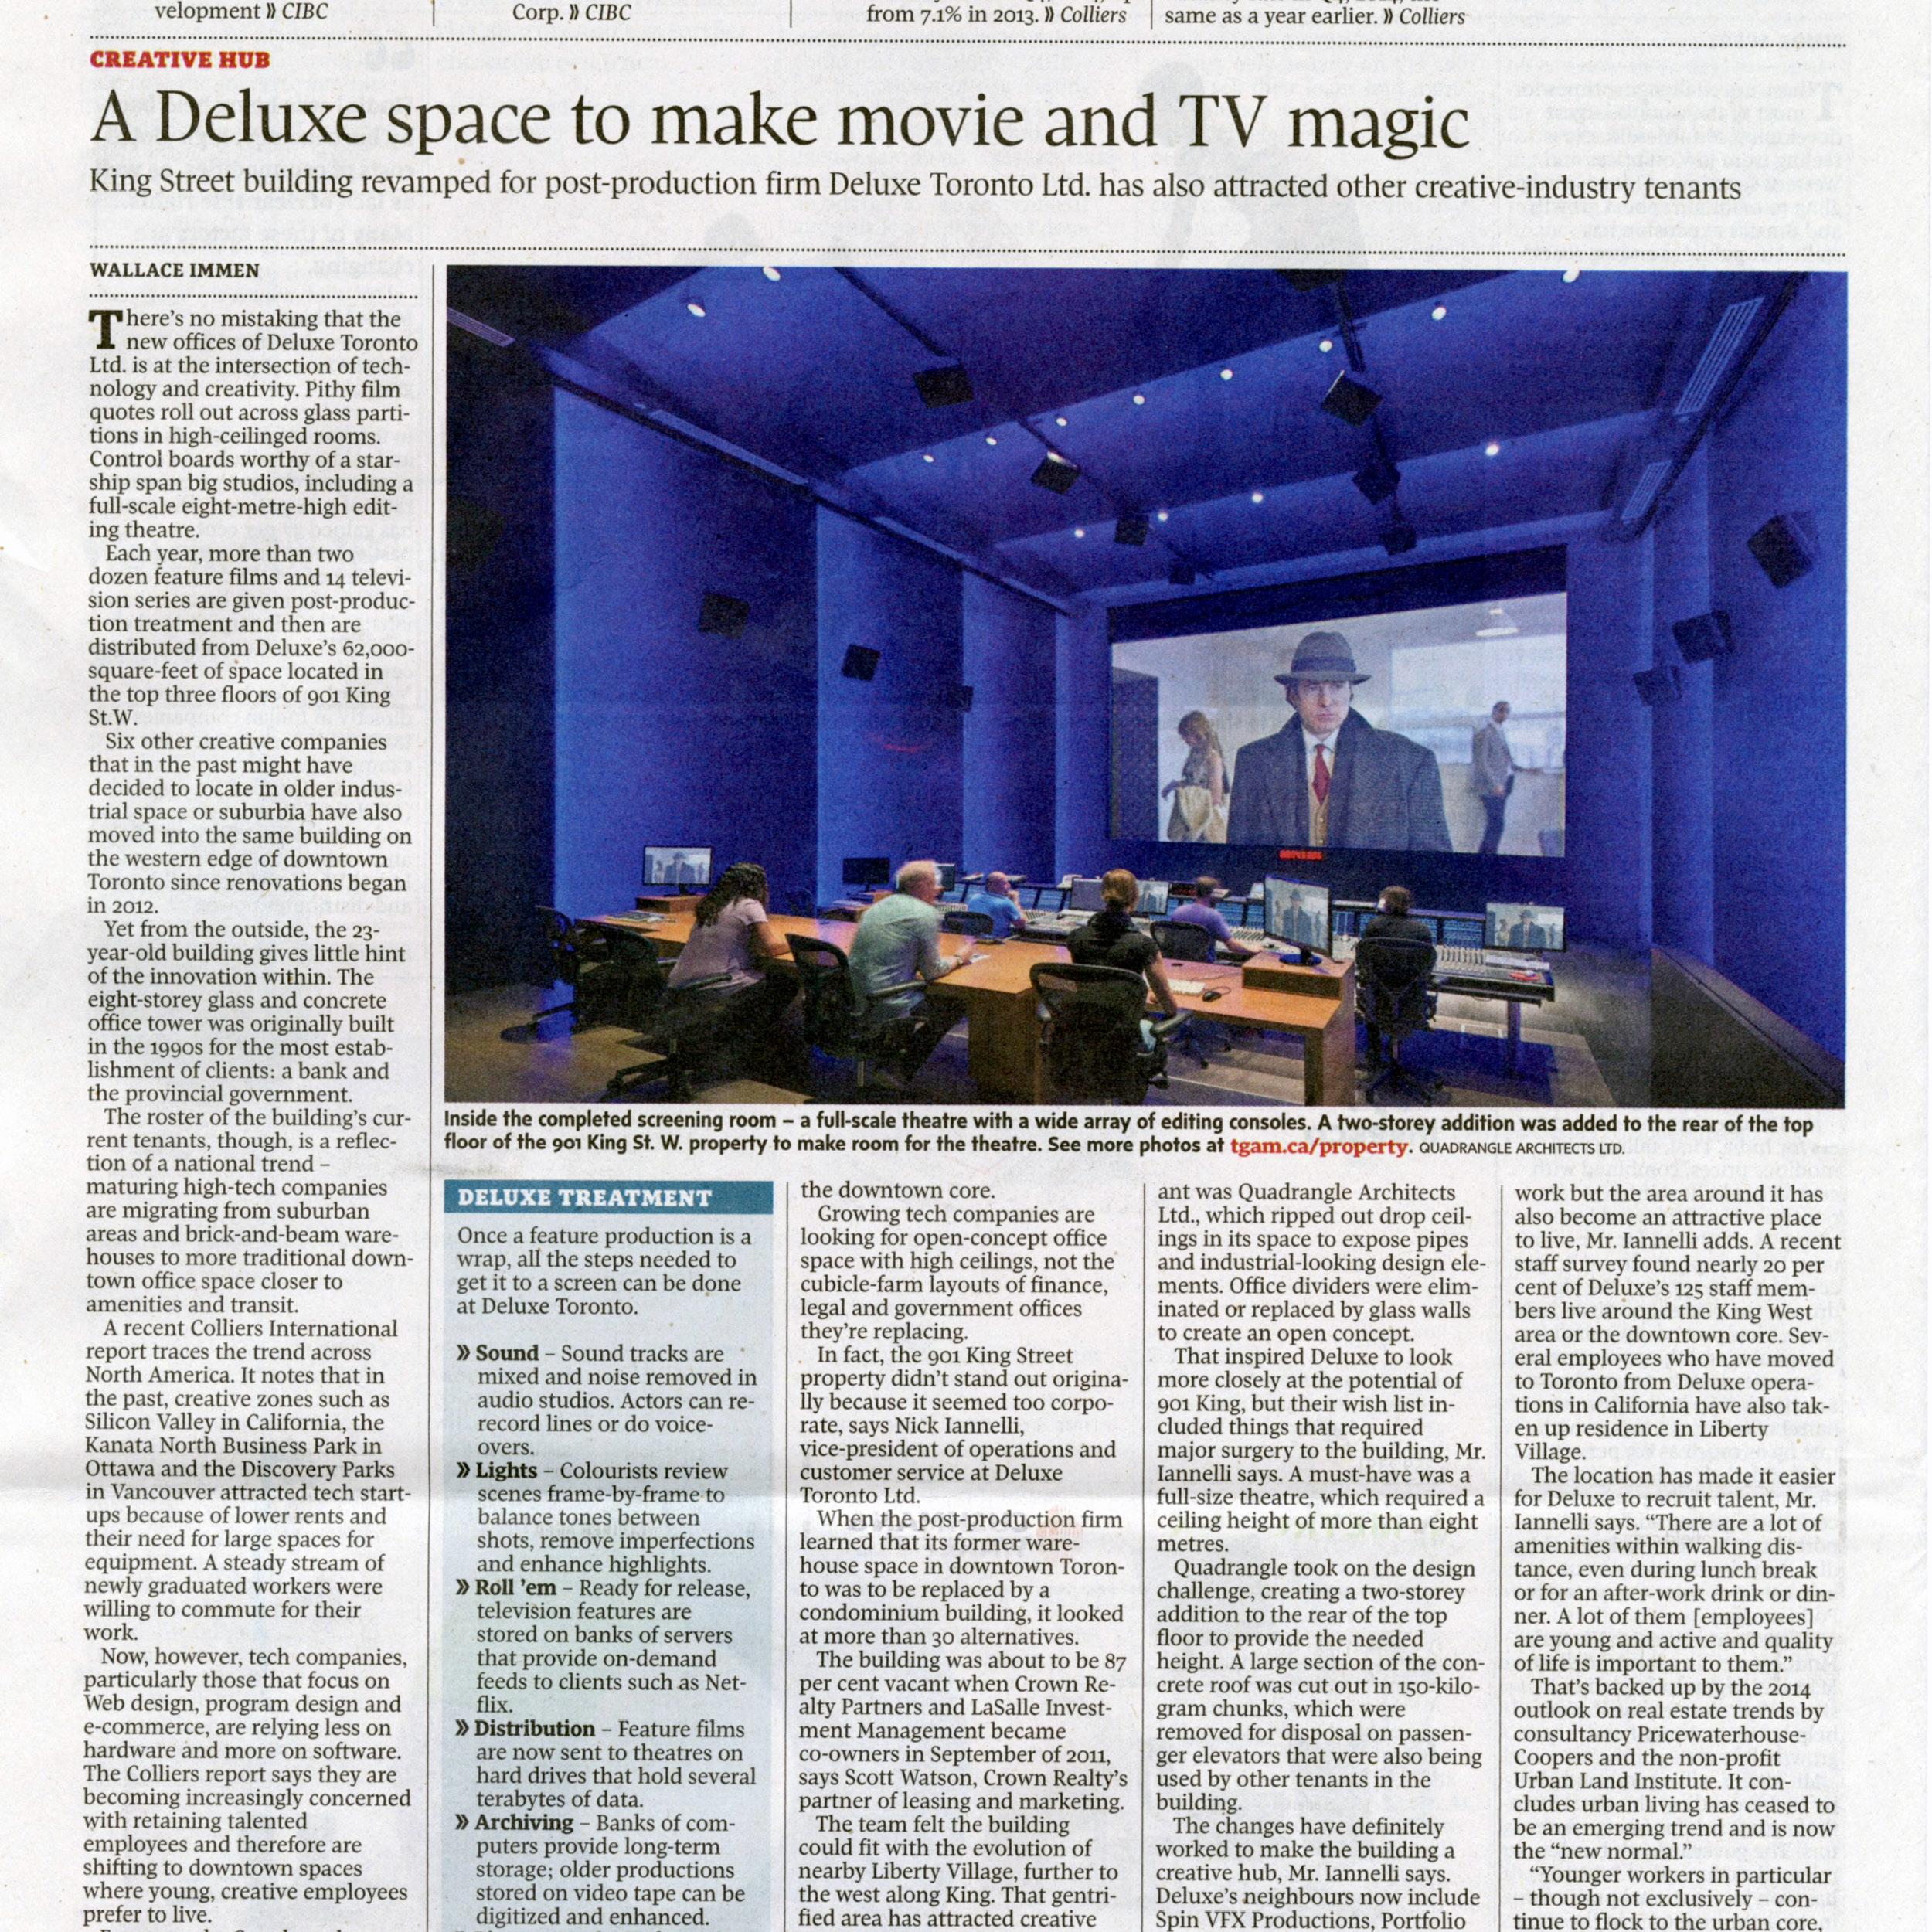 Globe and Mail newspaper article about Deluxe's new office